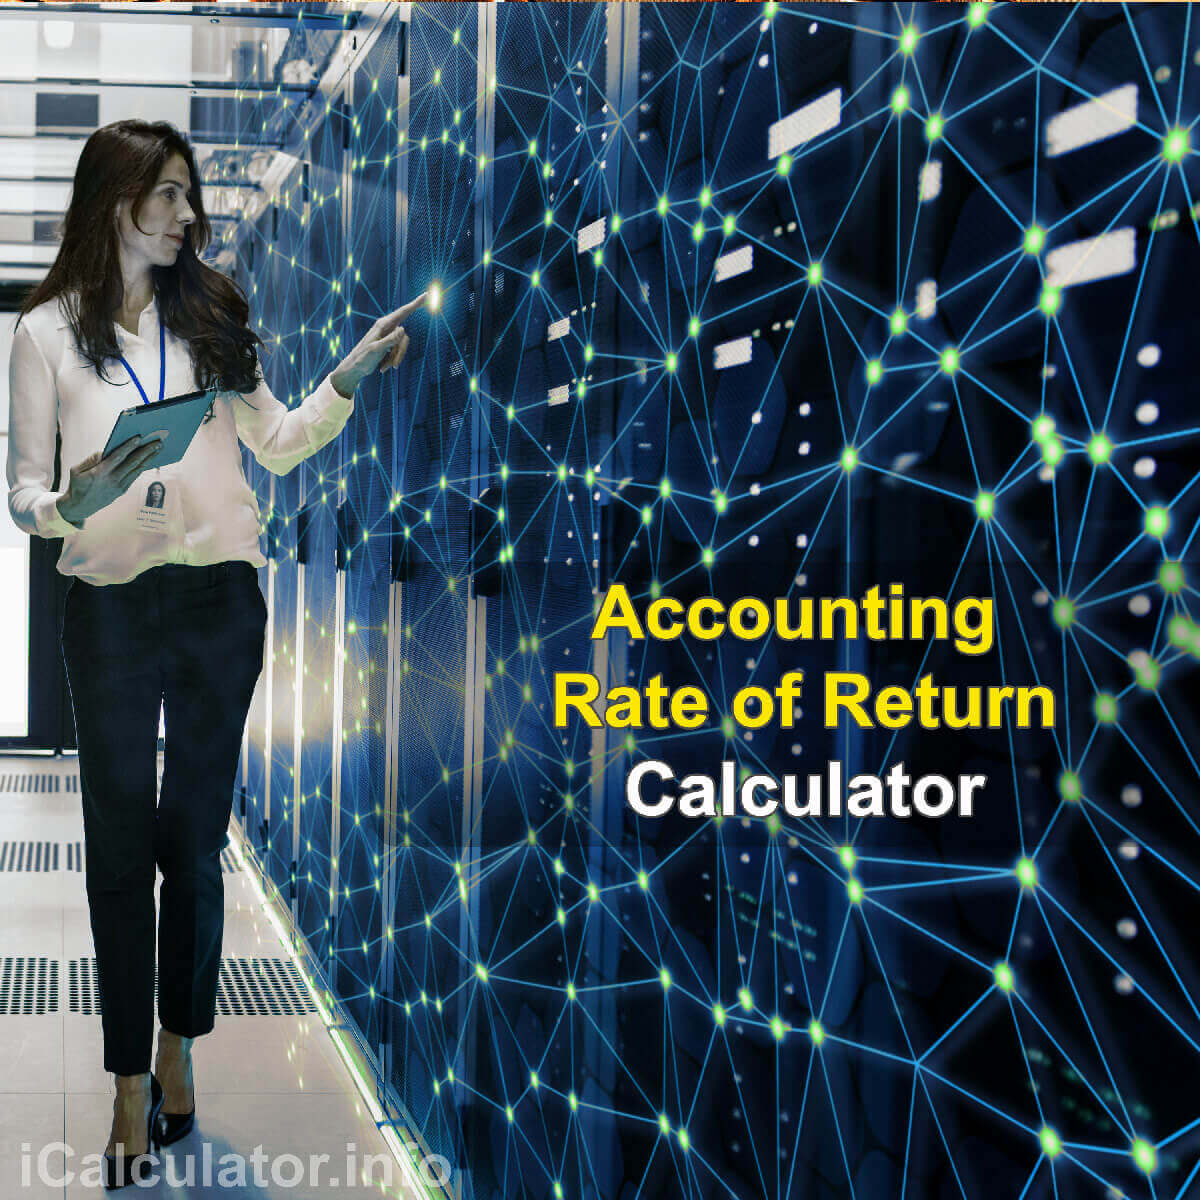 Accounting Rate of Return Calculator. This image provides details of how to calculate the Accounting Rate of Return using a calculator and notepad. By using the Accounting Rate of Return formula, the ARR Calculator provides a true calculation of the measure of return on a project investment in terms of income where income is not equivalent to cash flow.